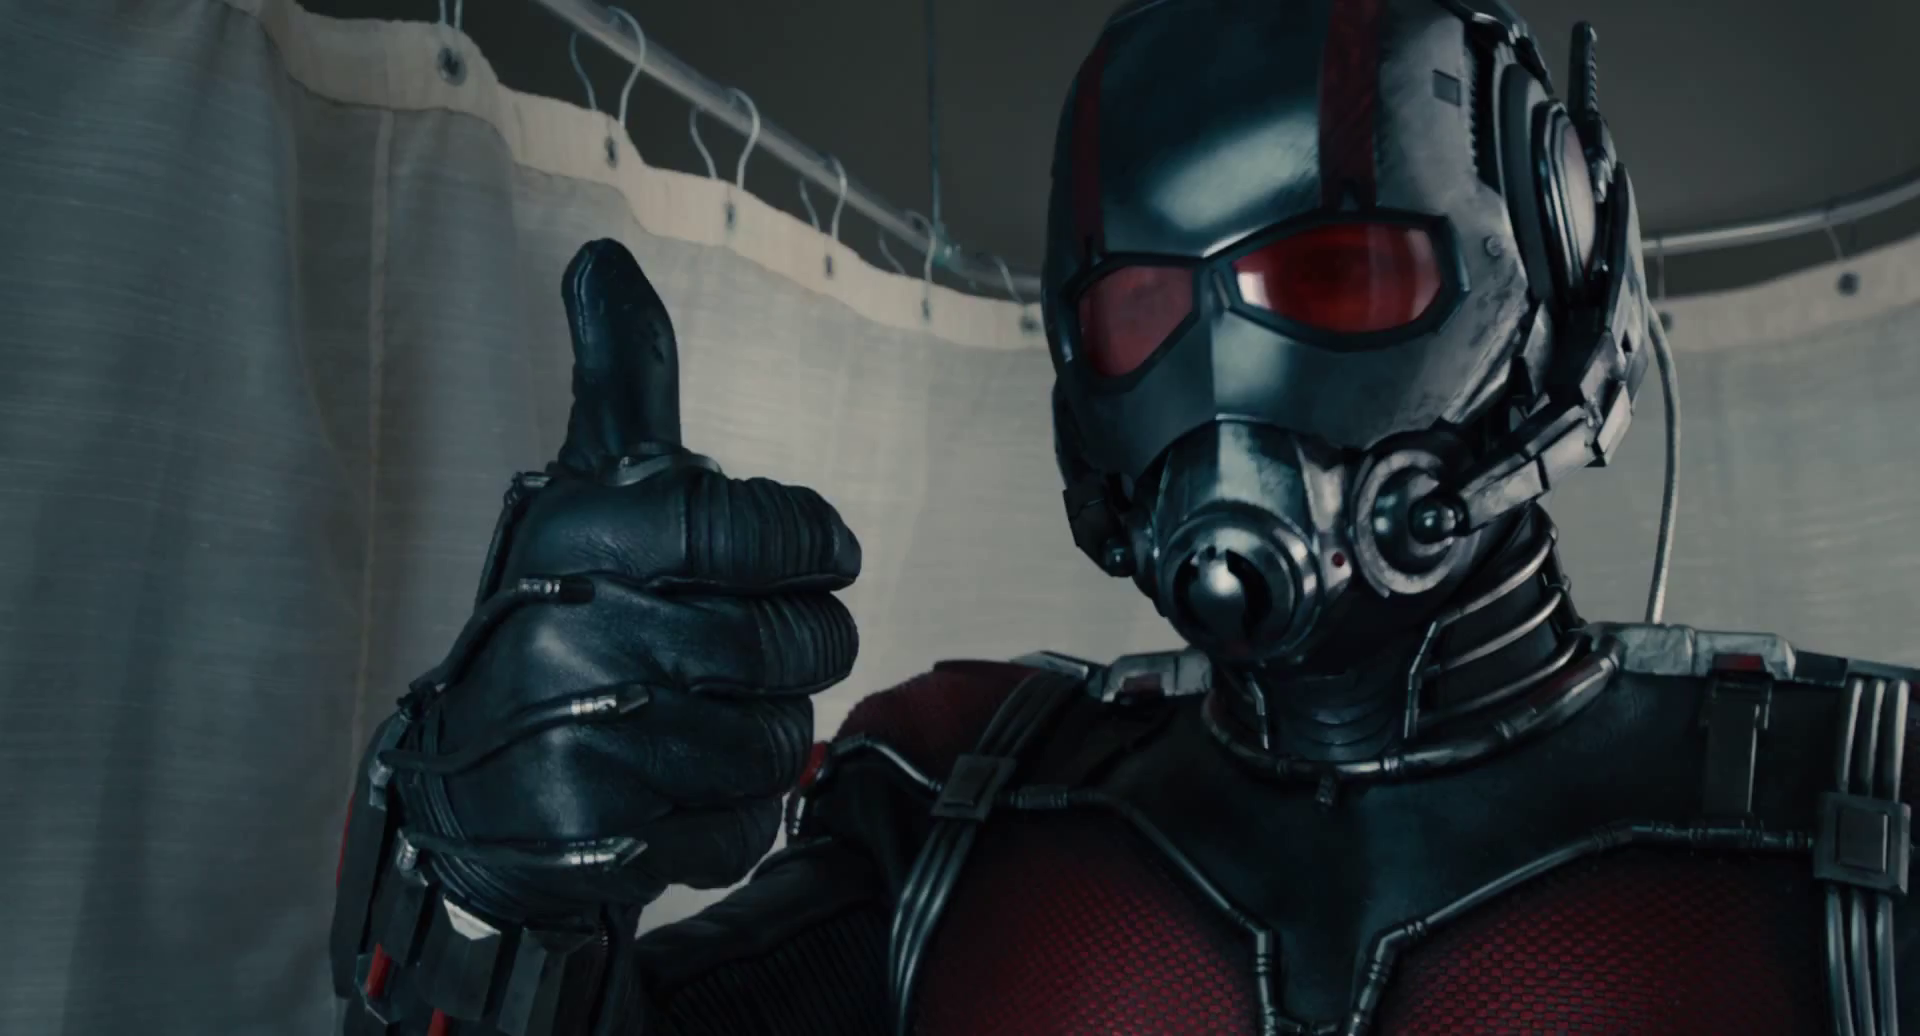 Ant-Man-Official PHOTO-07DEZEMBRO2014-45